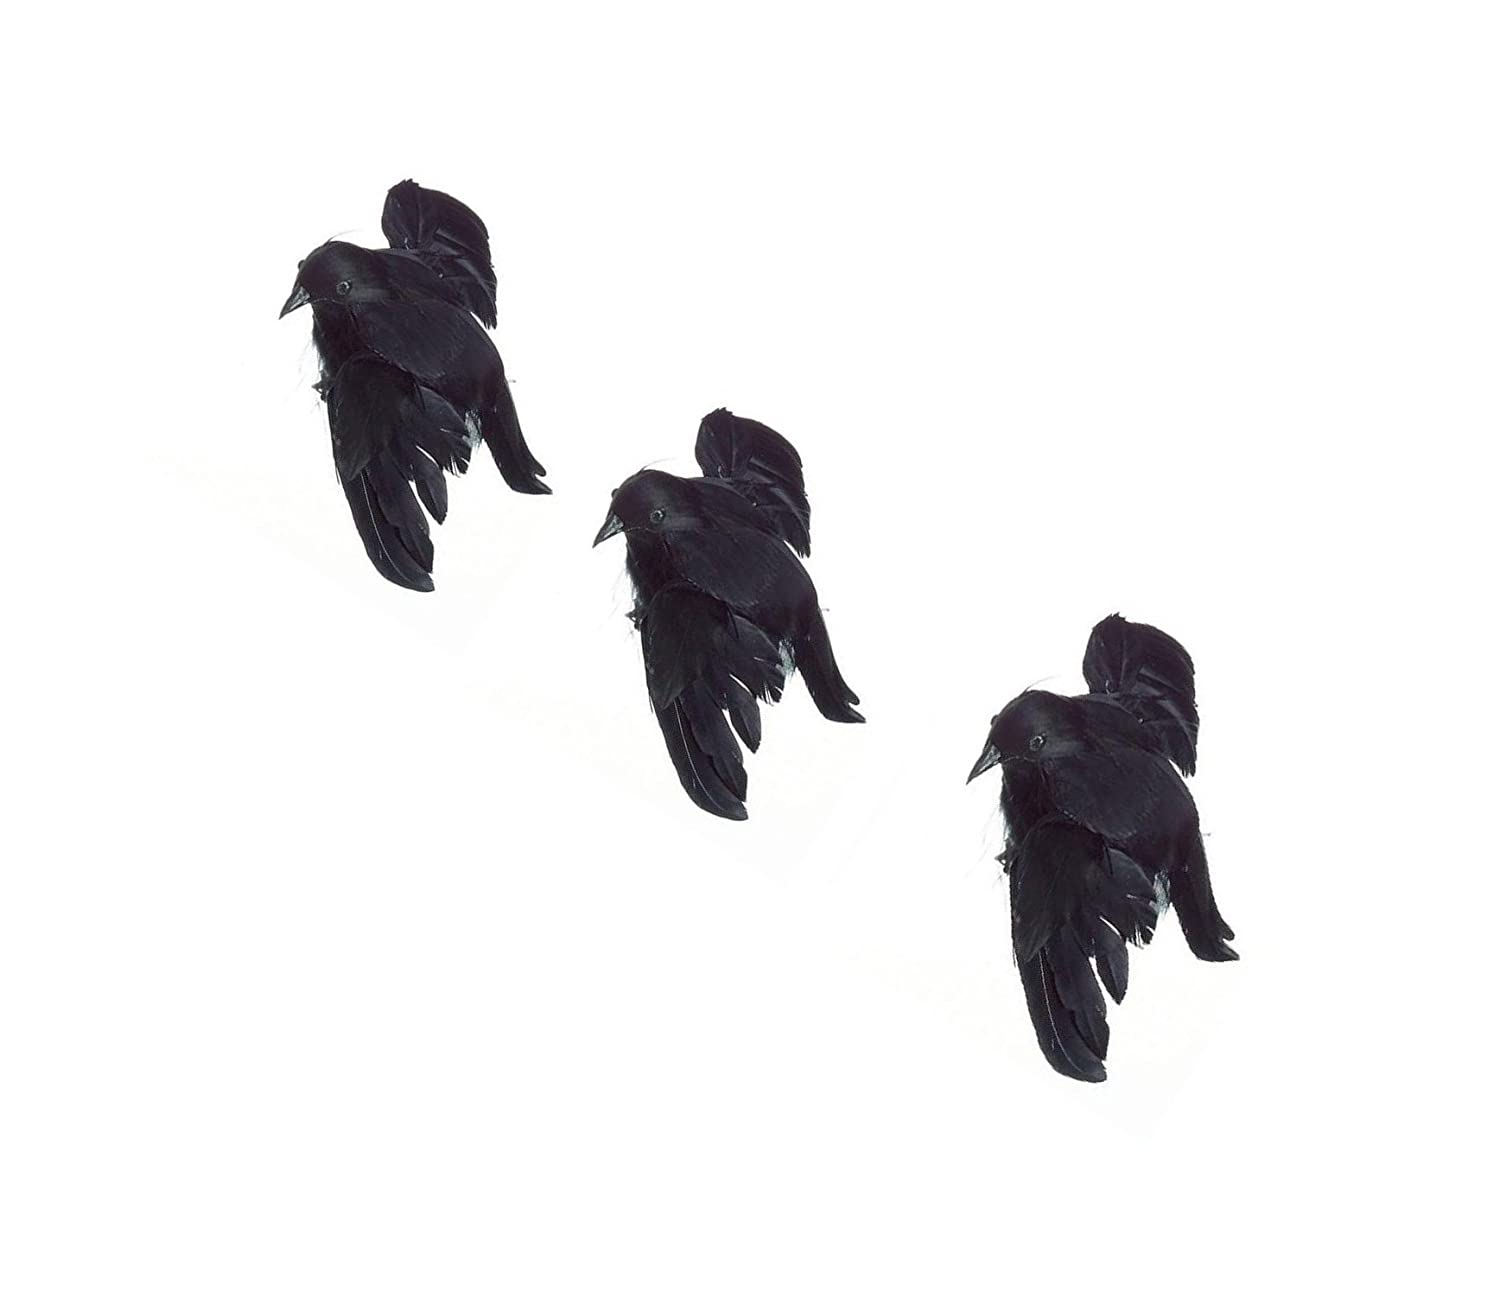 amazoncom package of 3 artificial black feather halloween flying crows 4 34 long beak to tail home kitchen - Halloween Crows